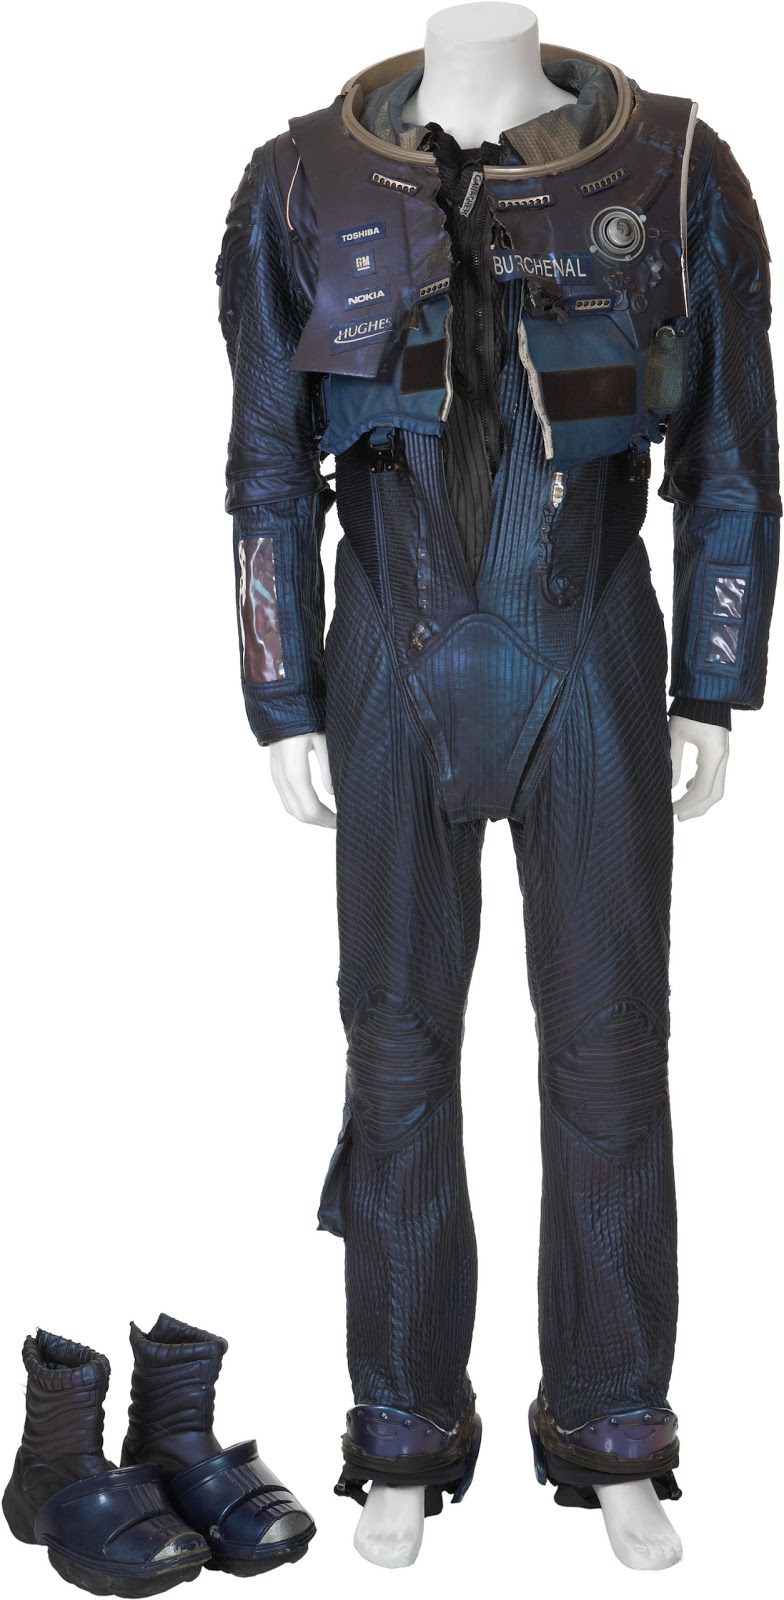 Red Futuristic Space Suit (page 3) - Pics about space